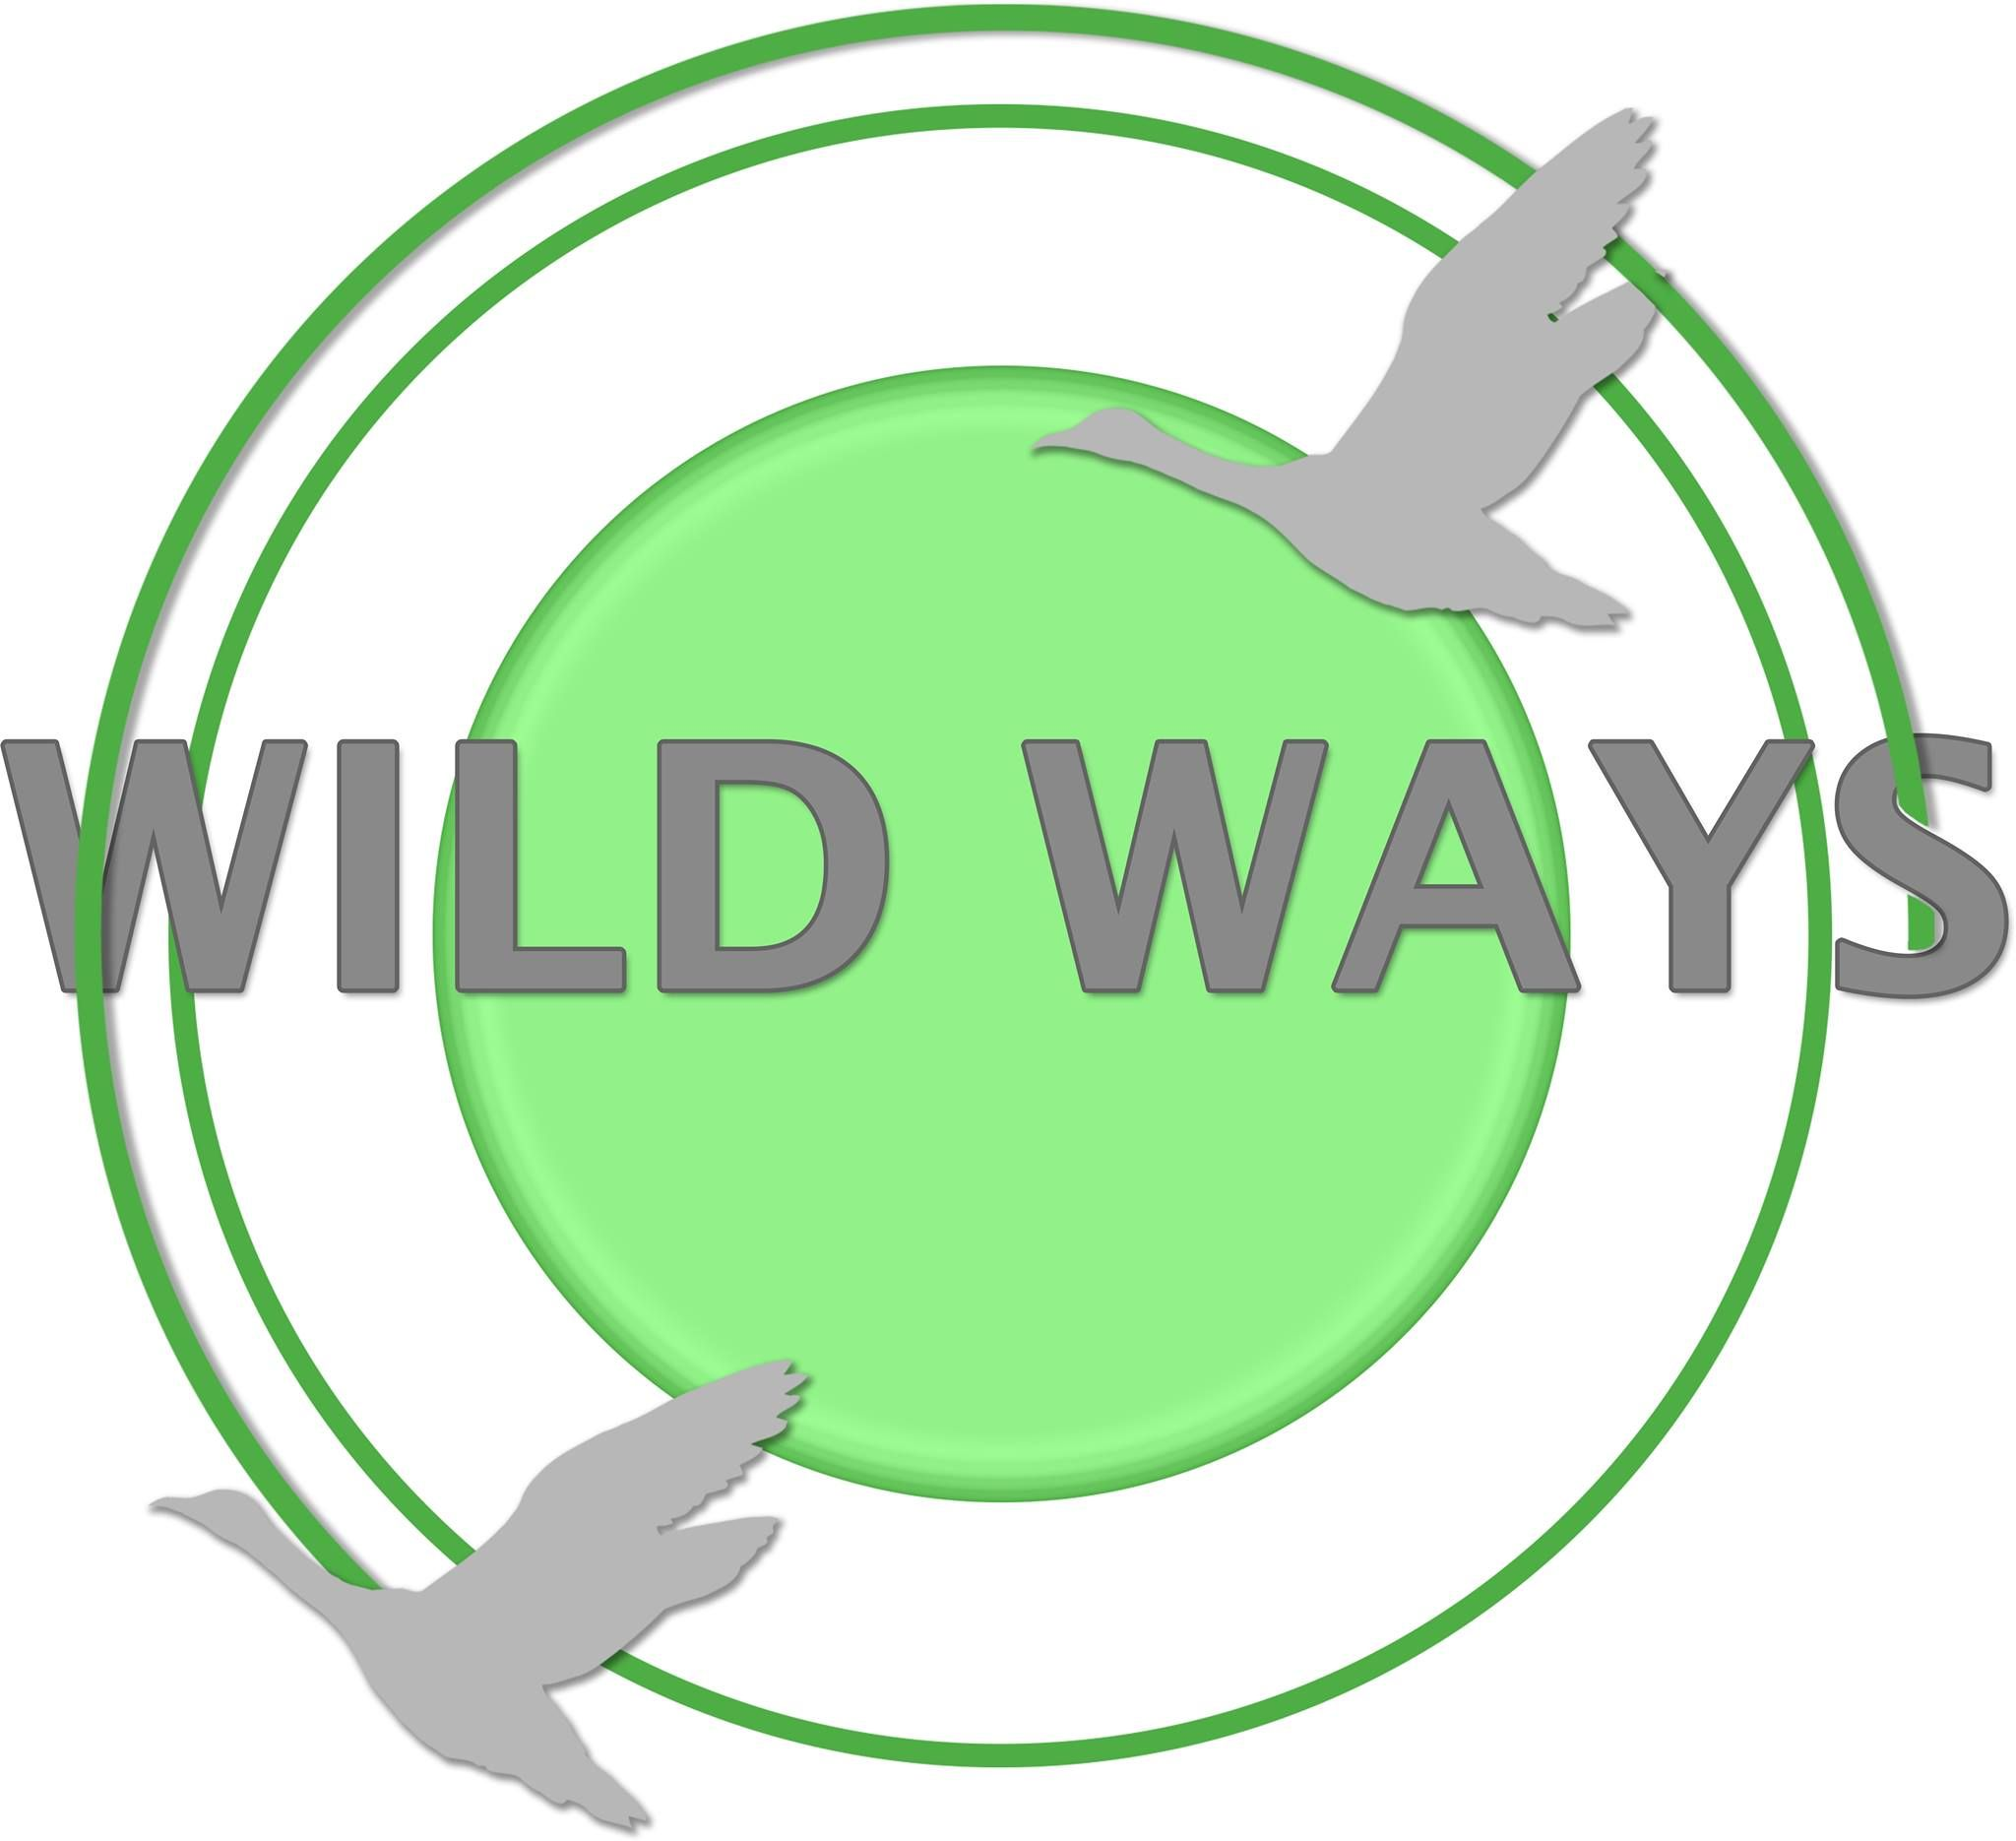 Logo Design For Wild Ways By Vernita Welch At Sales Squad Logos